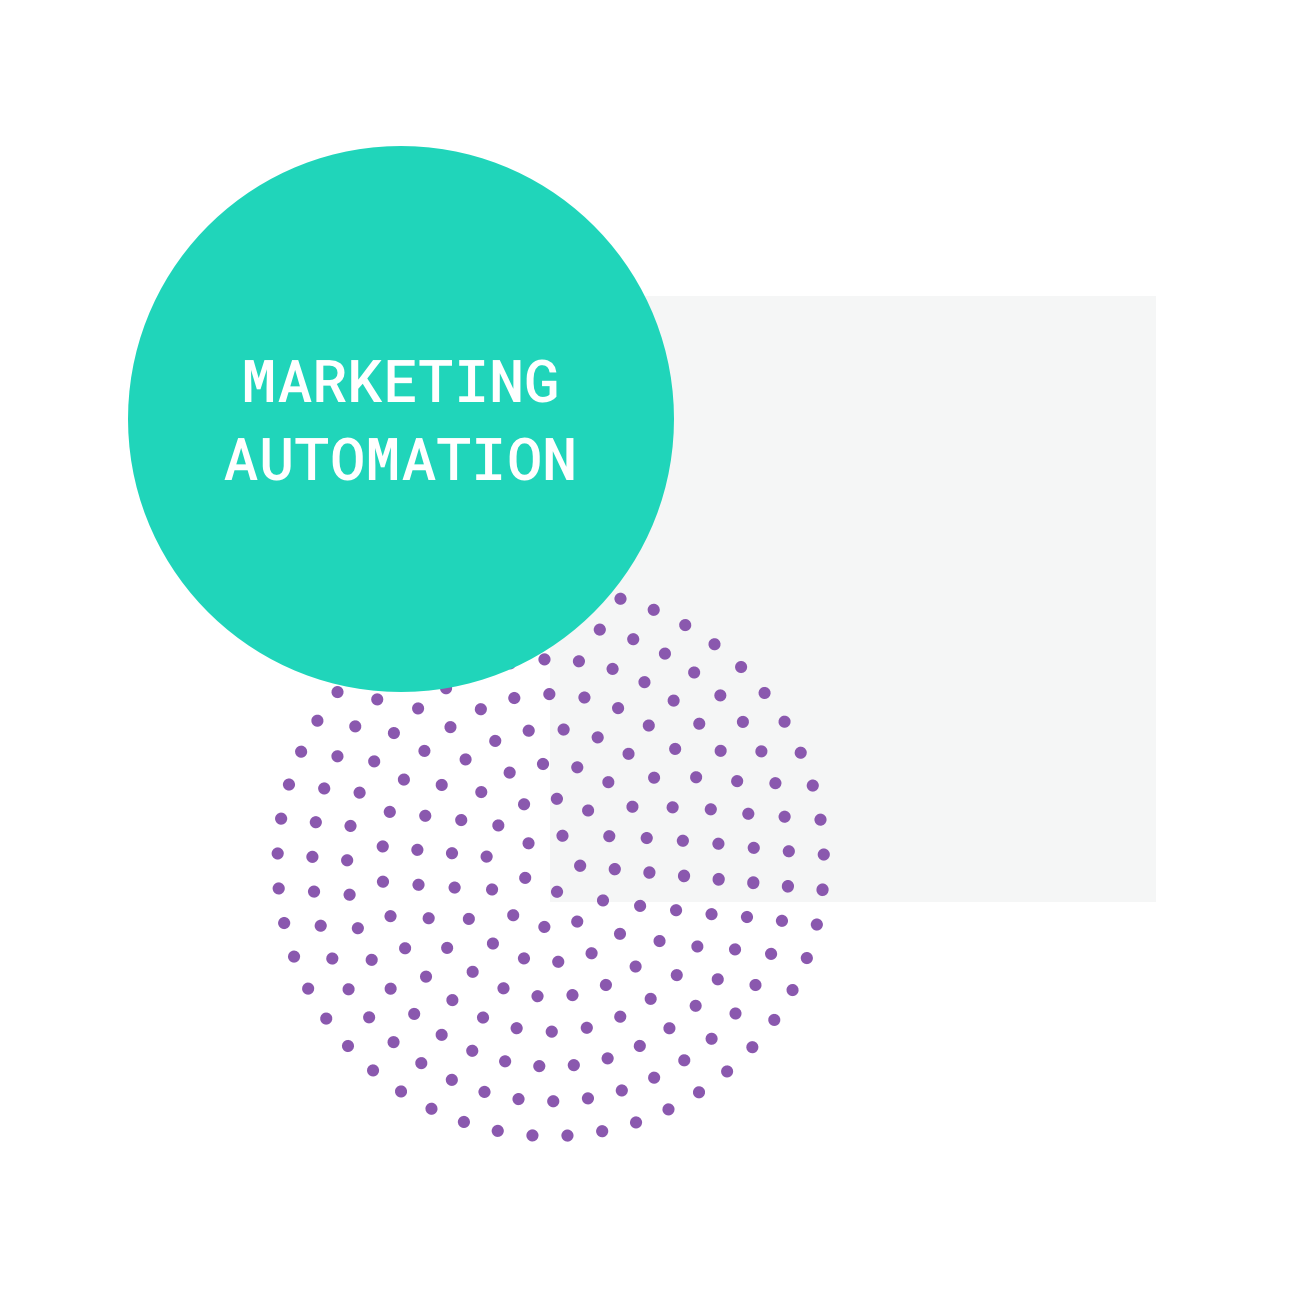 Marketing Automation Tweet Image